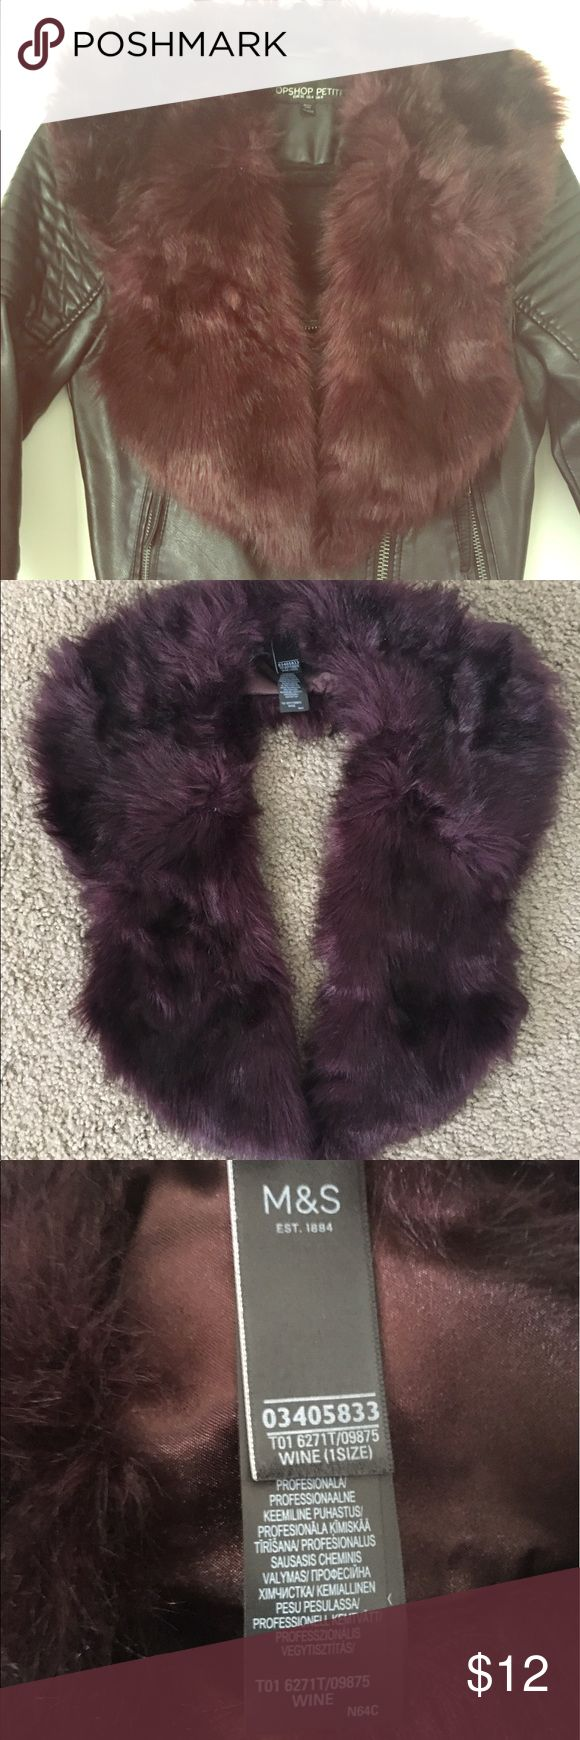 MARKS & SPENCER Faux Fur Collar Scarf Up your winter style game with this stylish faux fur collar scarf! Hook and eye closure, easily slips over any coat or sweater (leather jacket shown for styling purposes, not included). Lovely deep wine color. Never worn. Marks & Spencer Accessories Scarves & Wraps